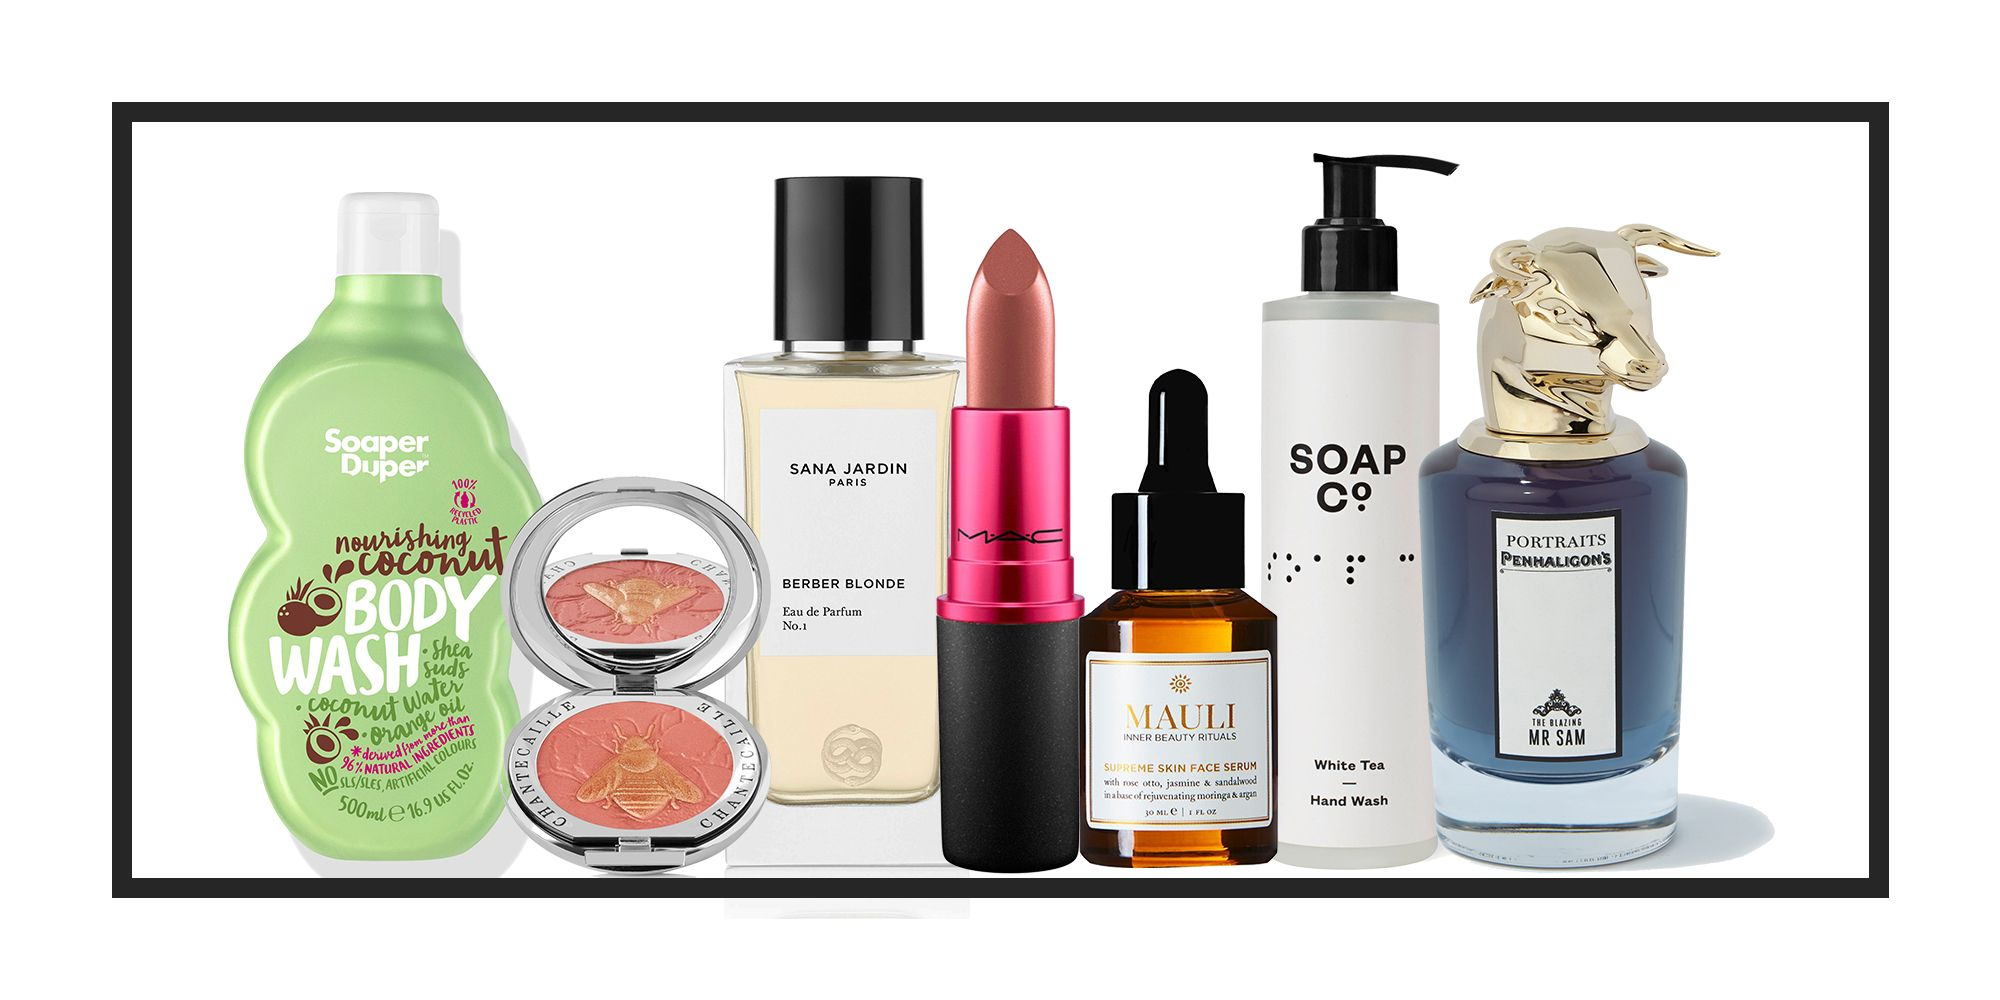 Charity beauty products